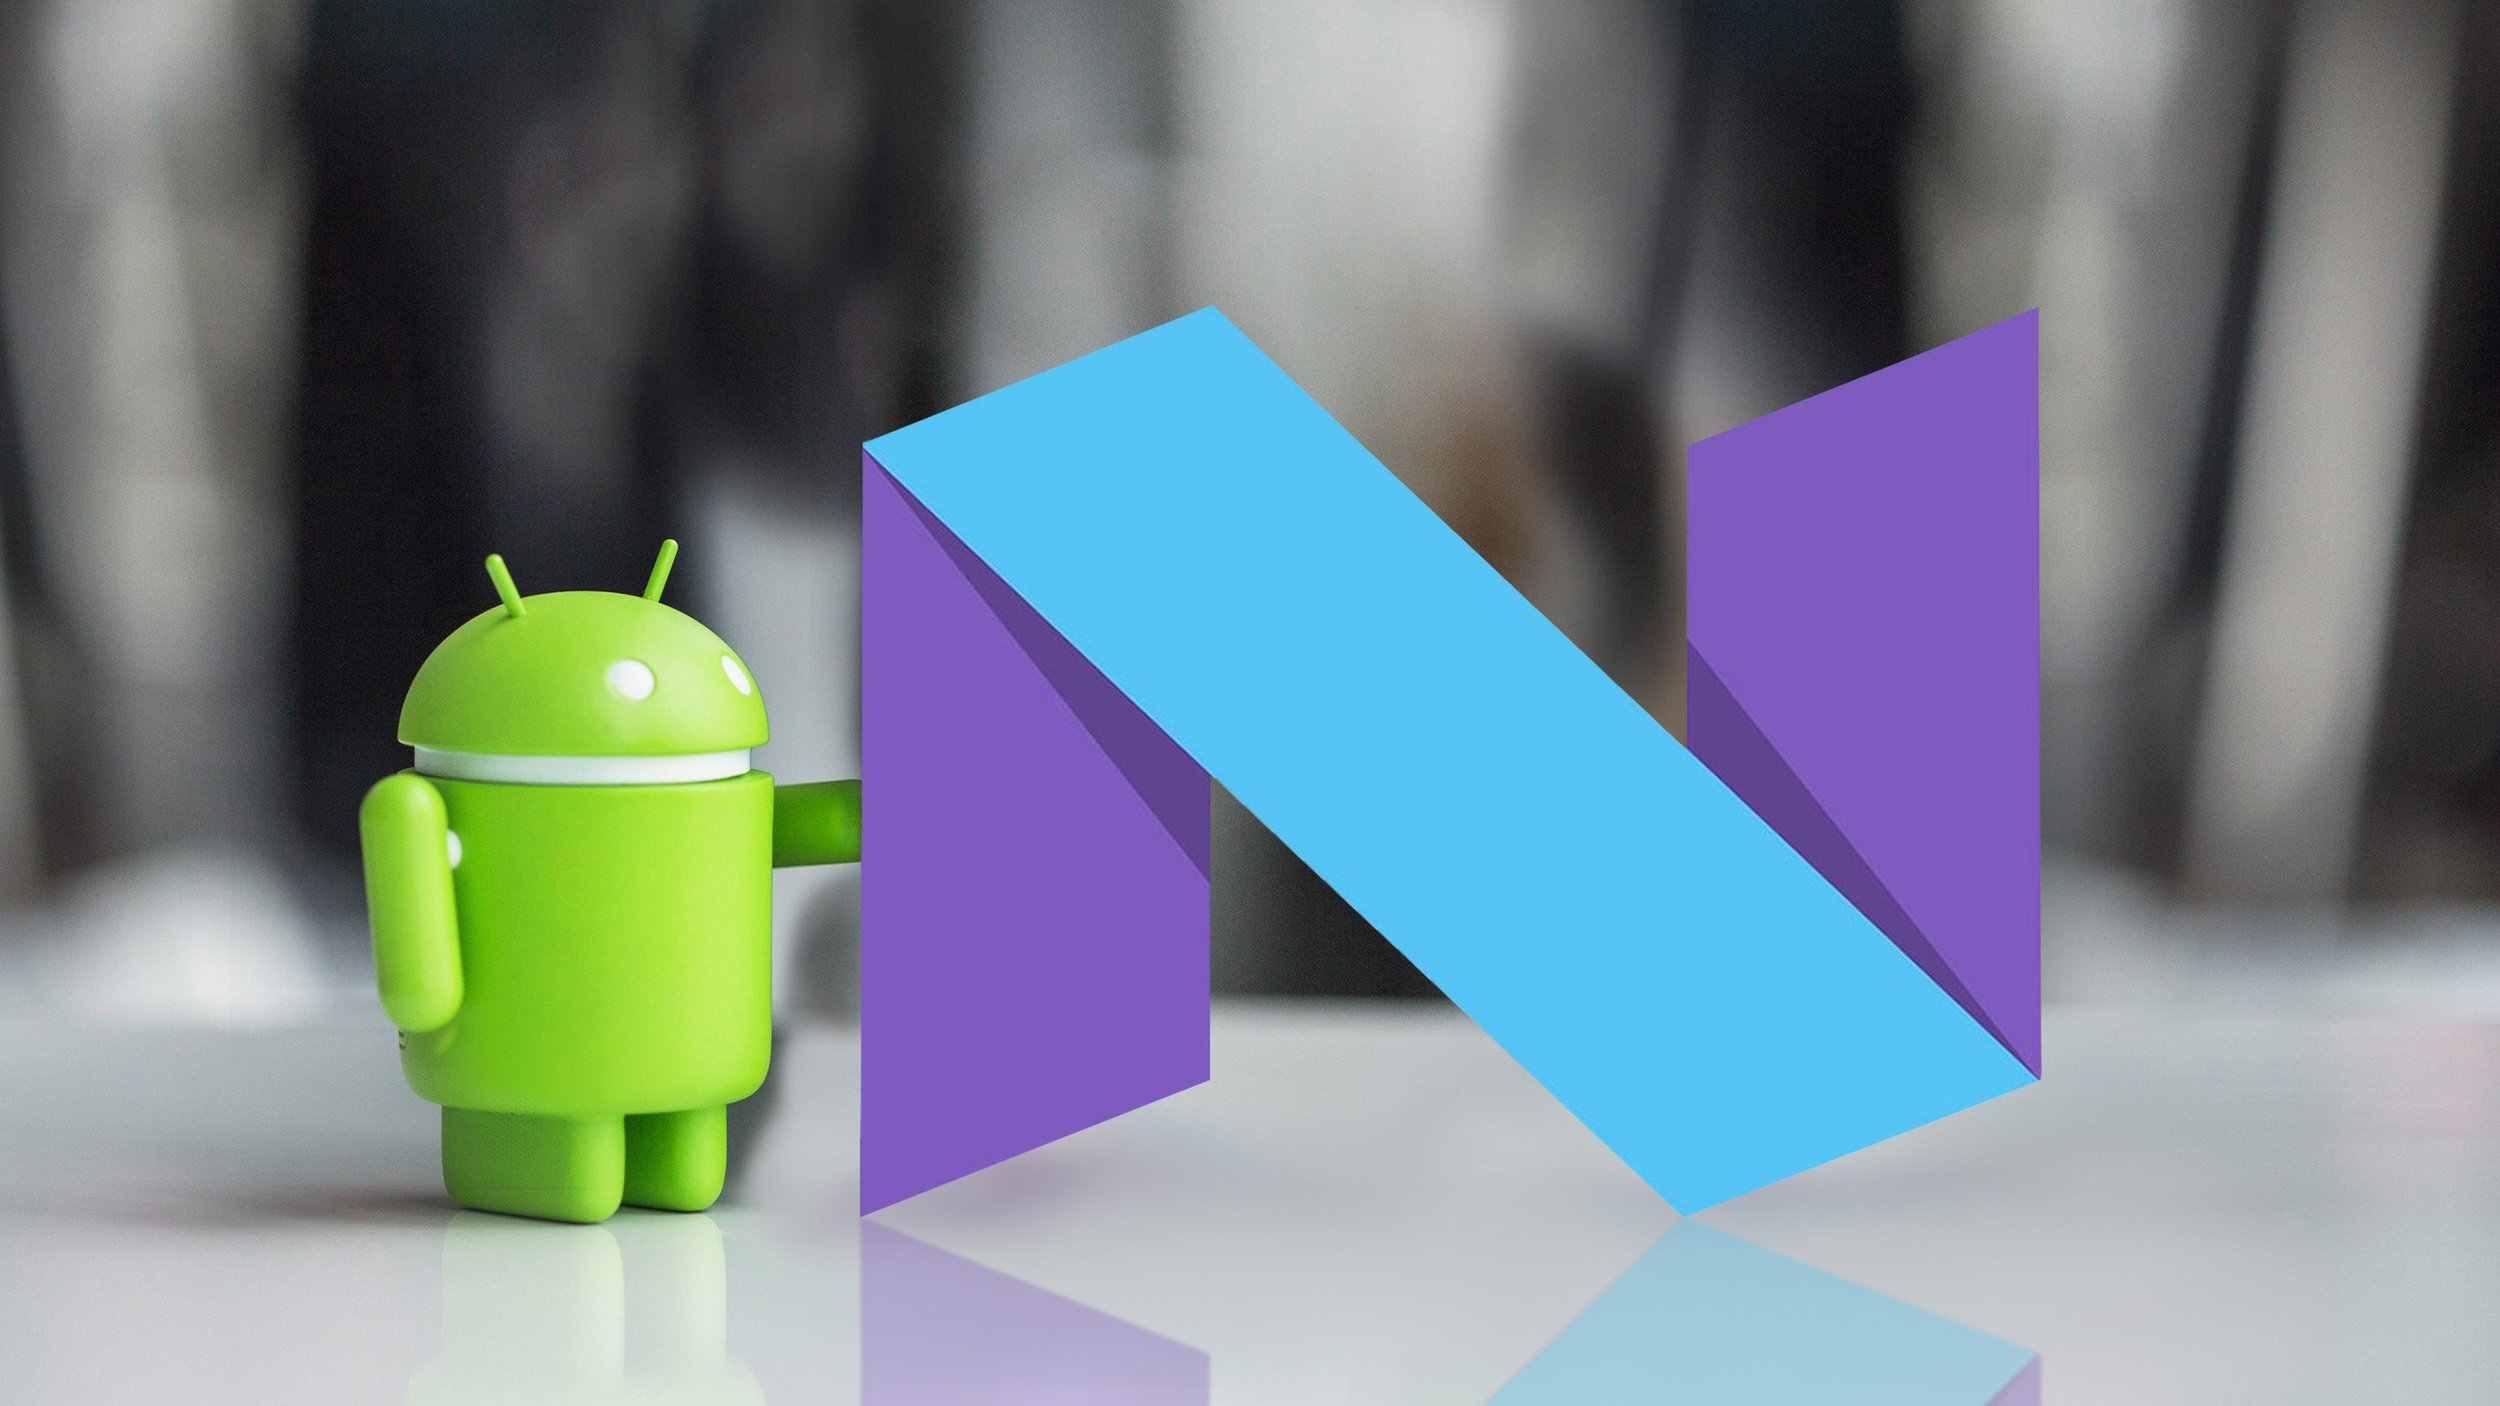 android 7.1.1 os updates